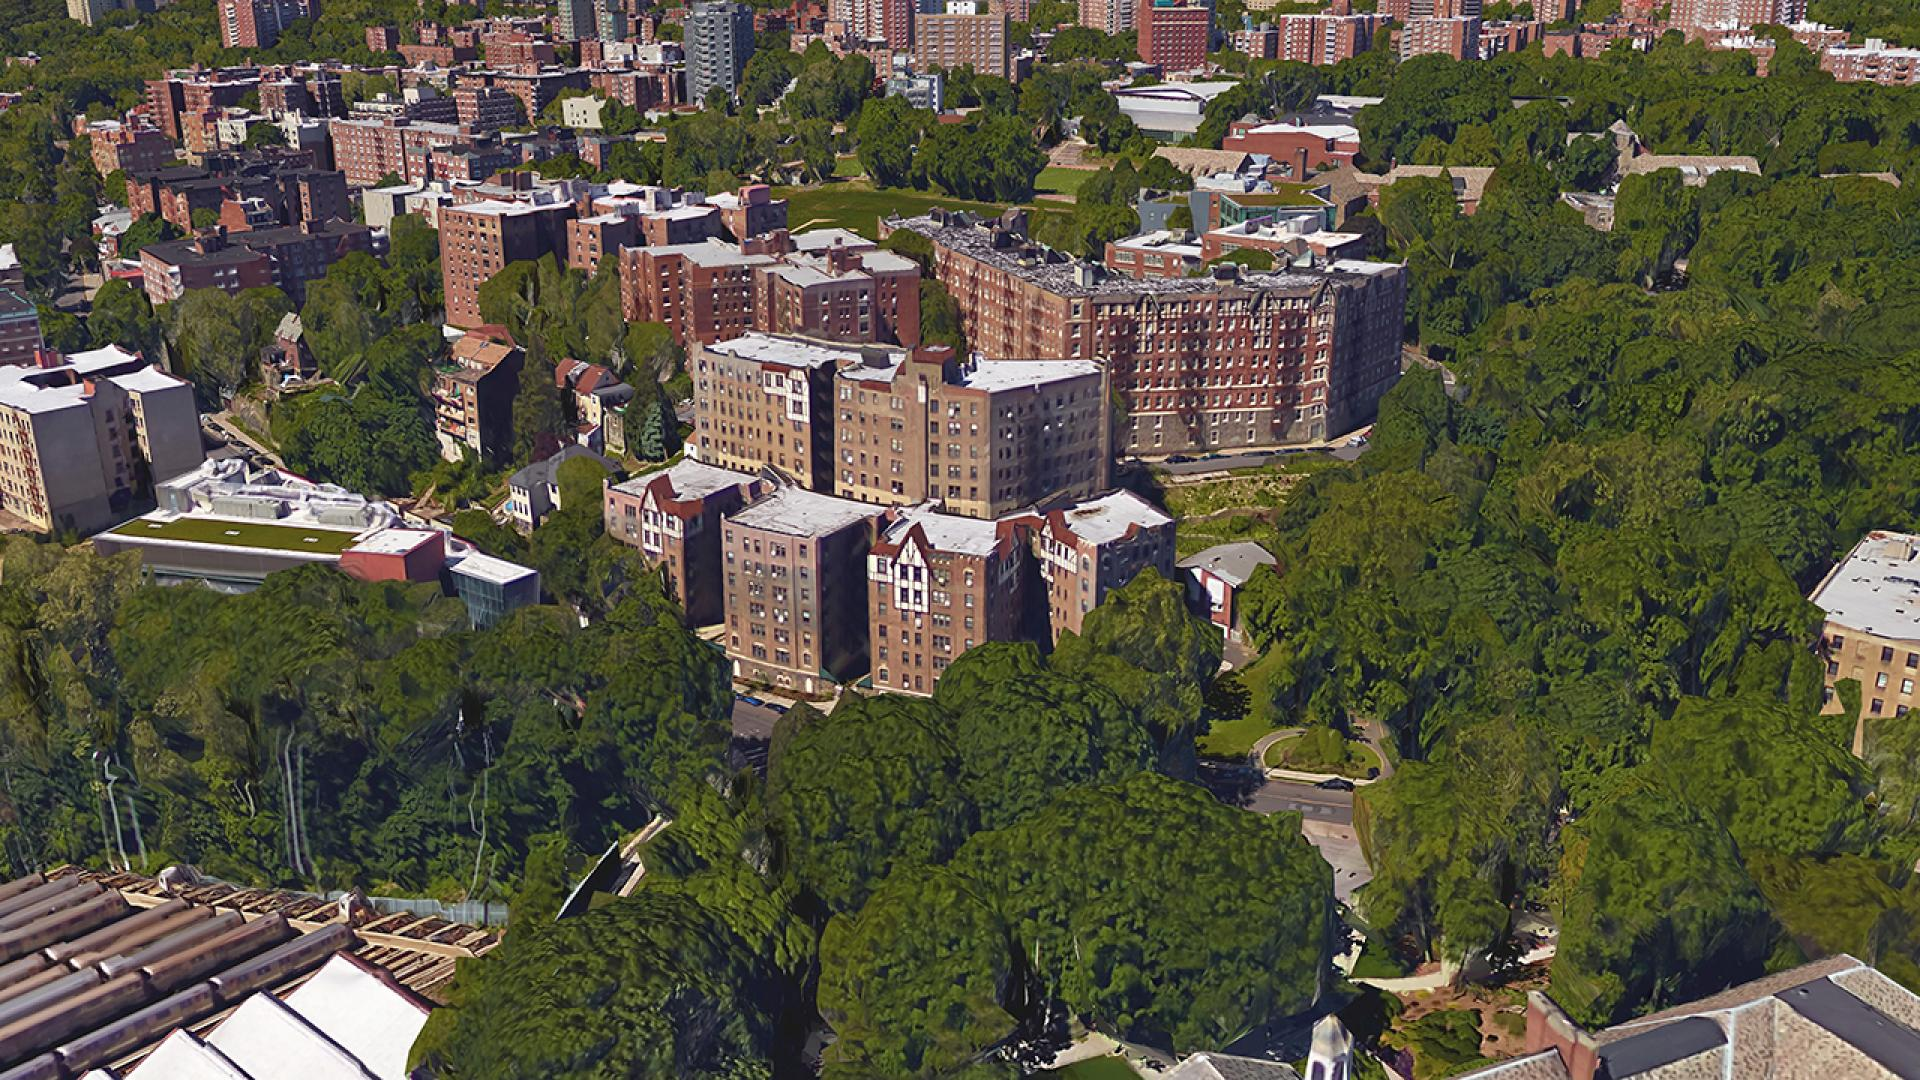 The Fieldston Riverdale Apartments 3875 Waldo Avenue